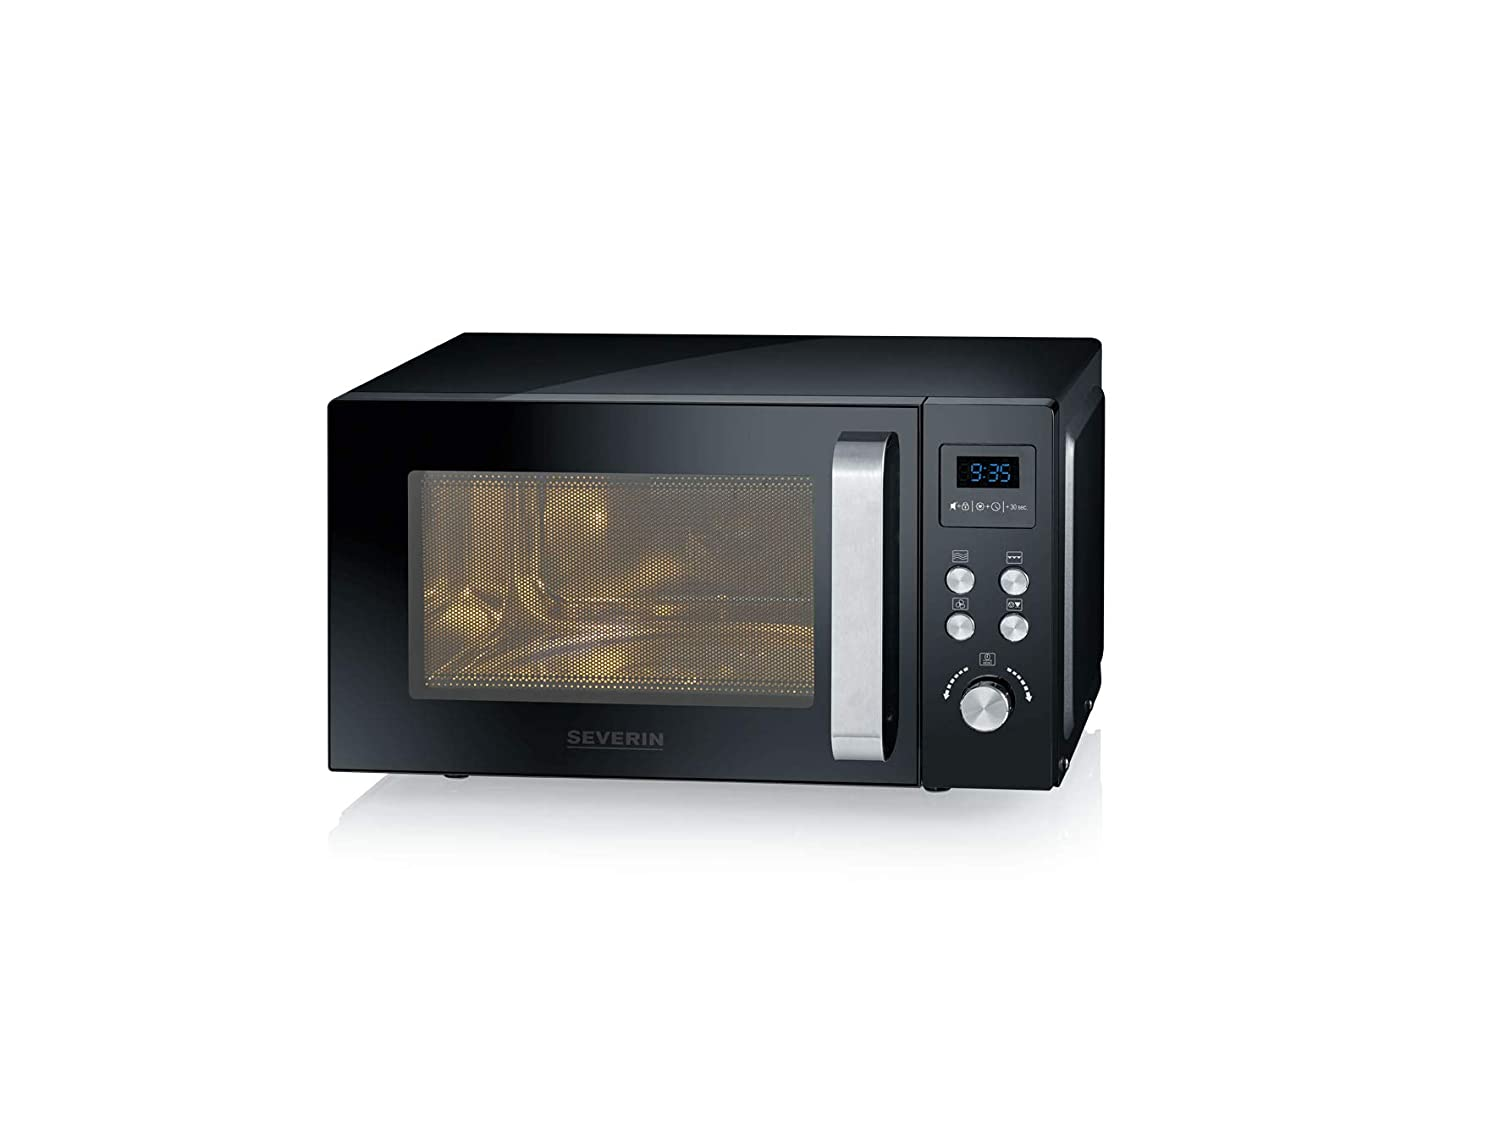 900 W Convection Grill Function 25 liters Black metal SEVERIN MW 7752 Microwave